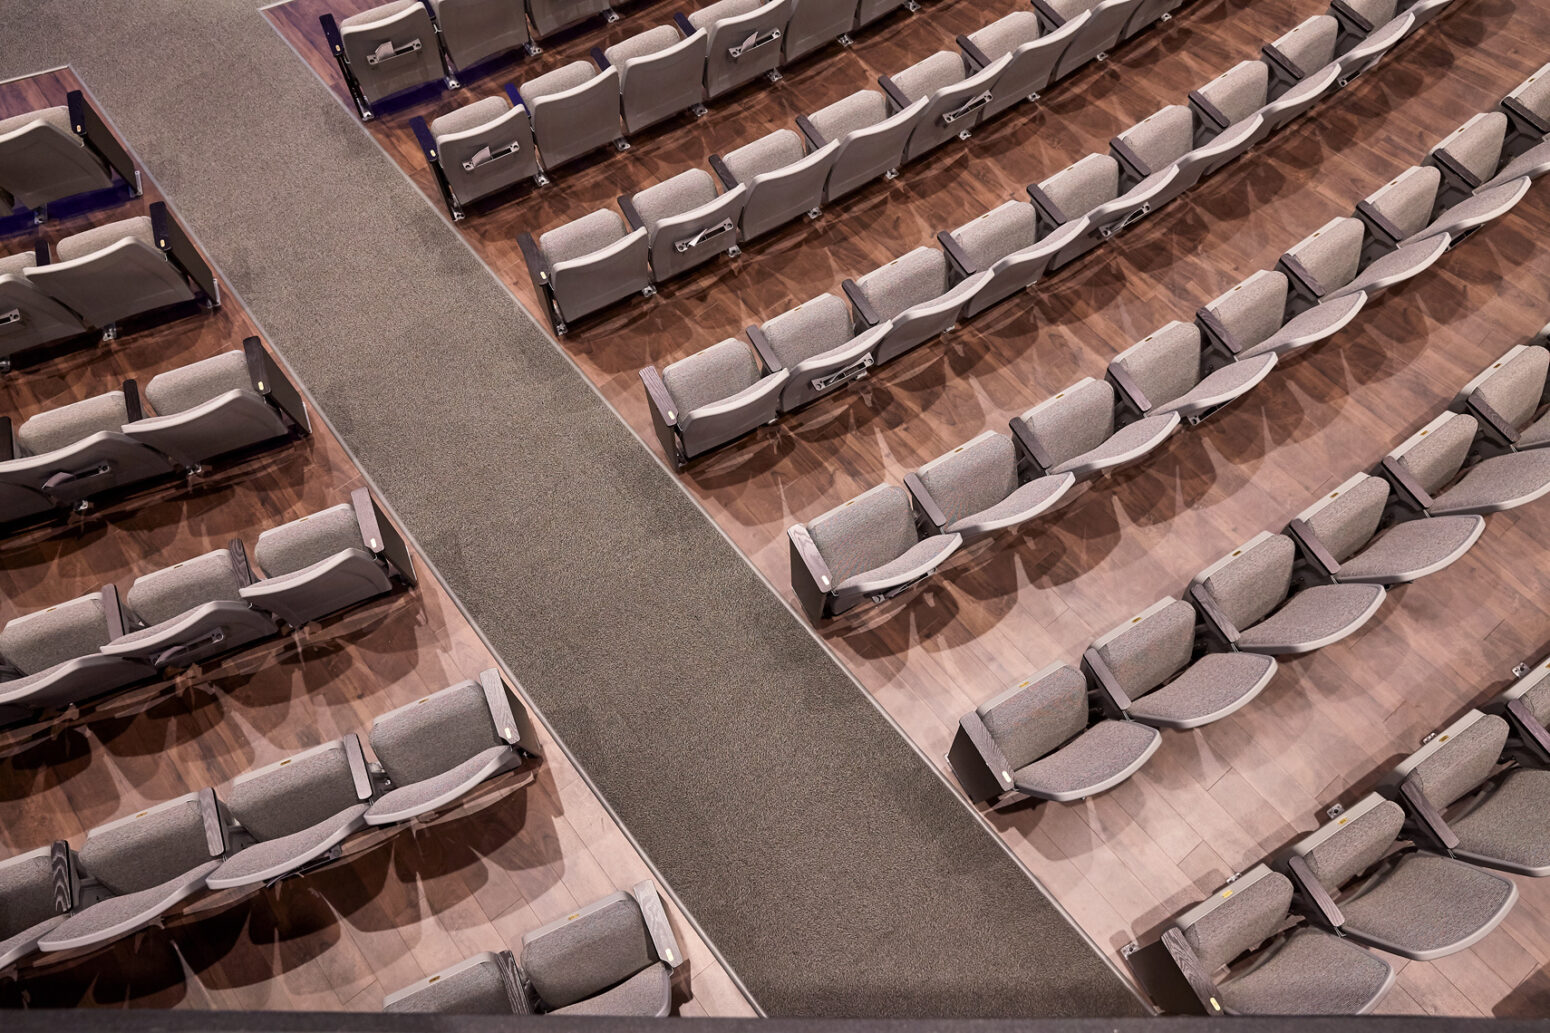 This auditorium design project maximized seating without sacrificing comfort.